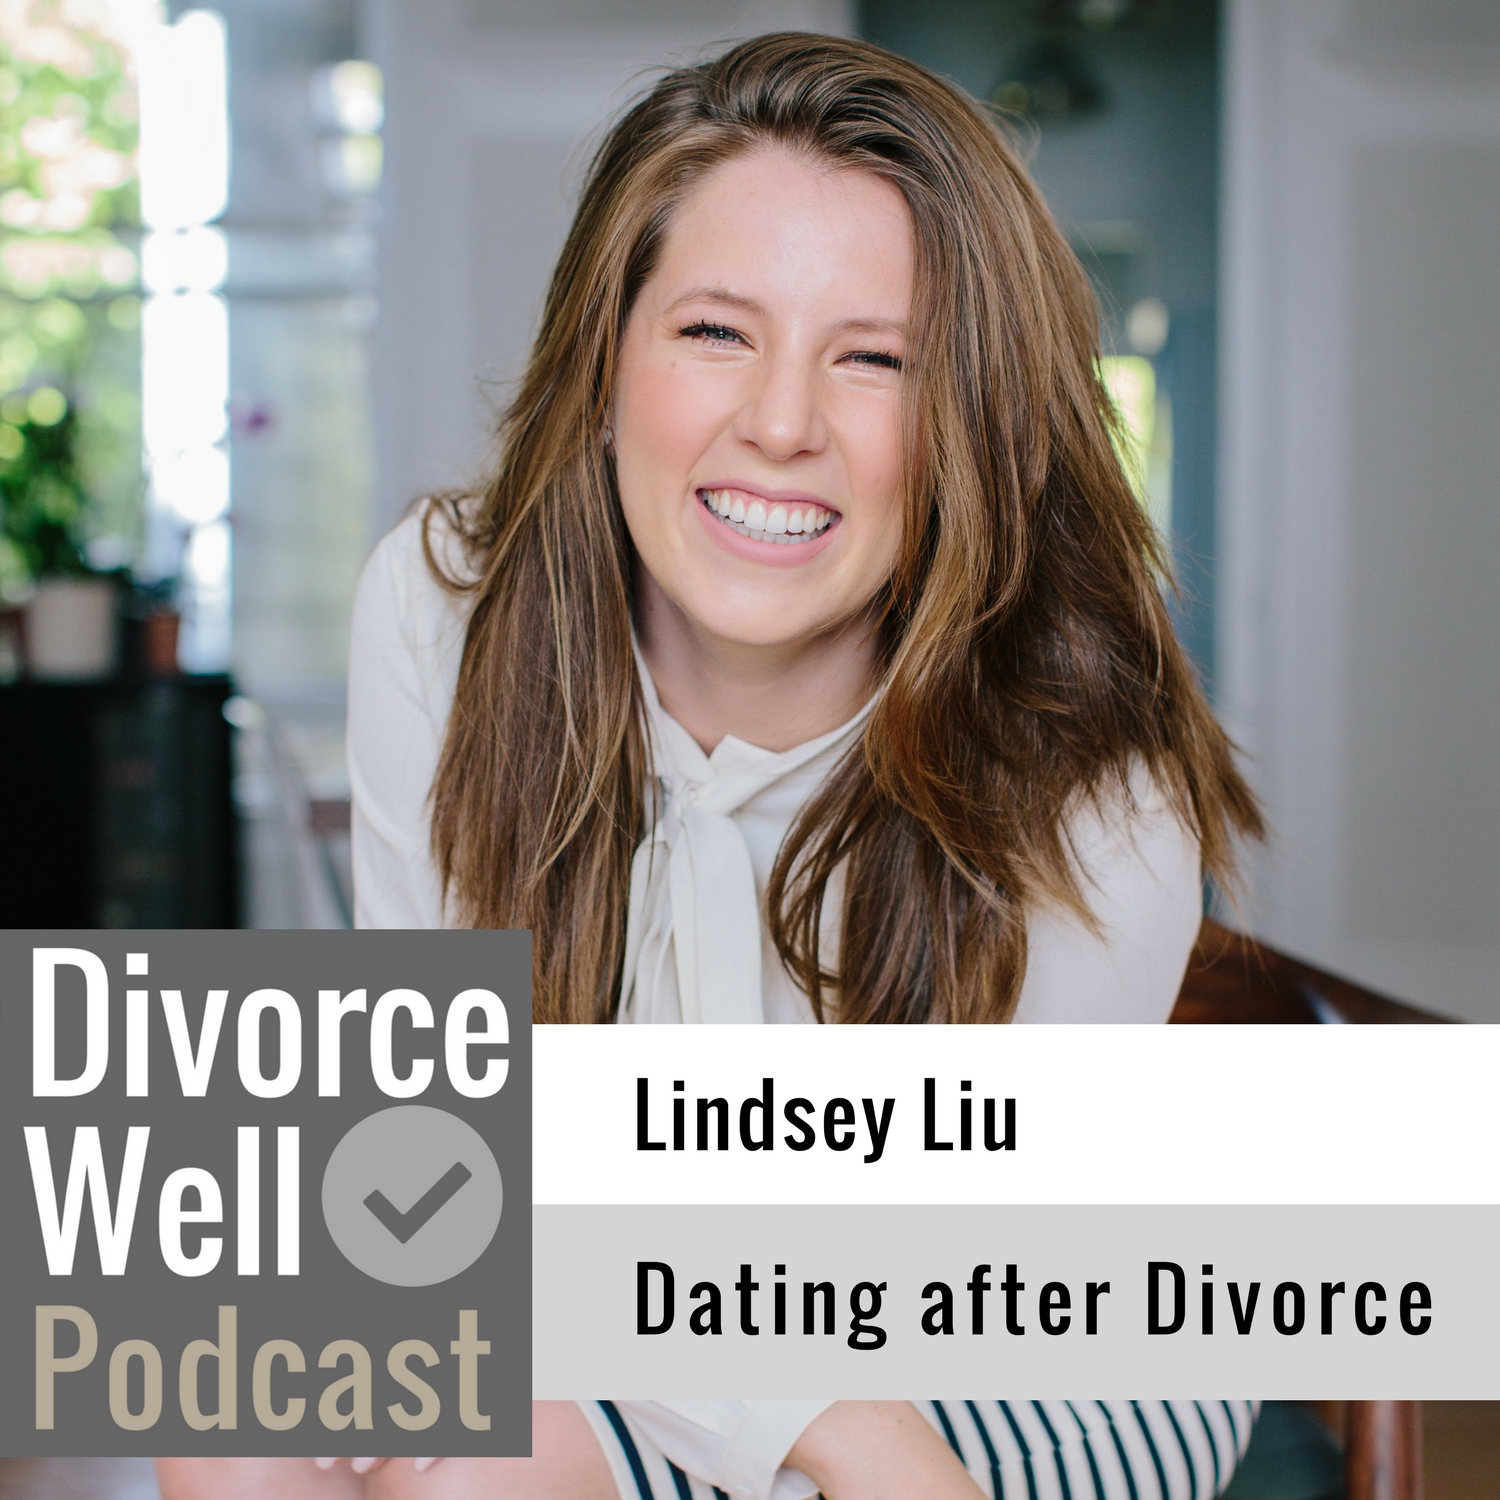 The Divorce Well Podcast - 16 - Dating after divorce, with Lindsey Liu